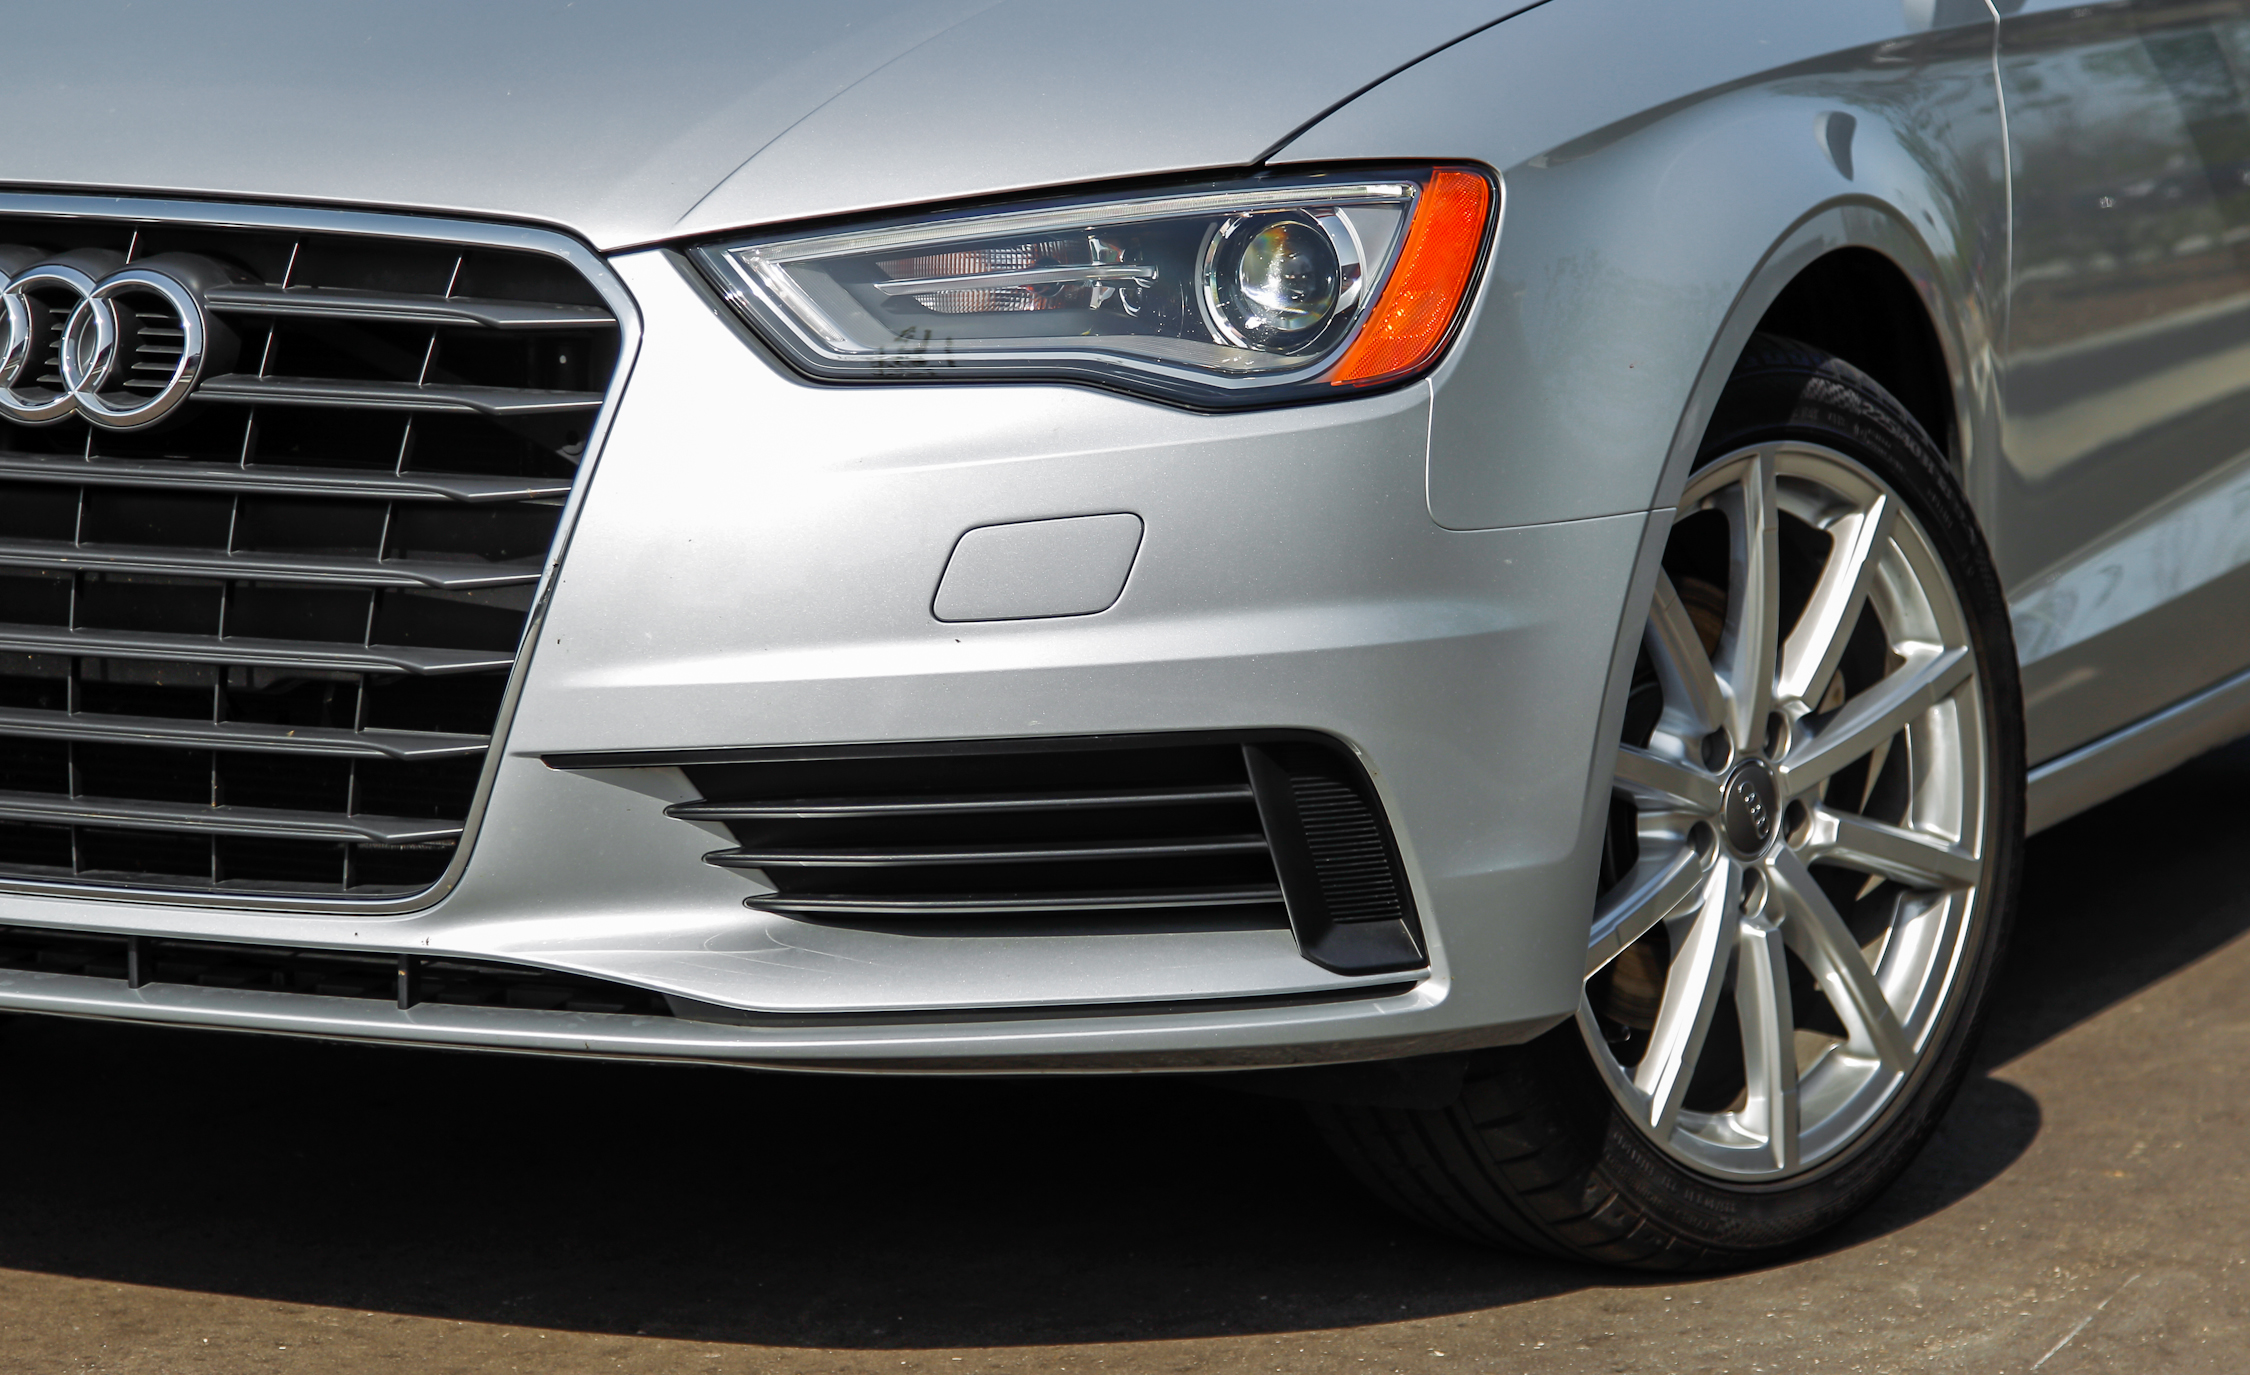 2015 Audi A3 1.8T Exterior View Headlamp (Photo 45 of 50)